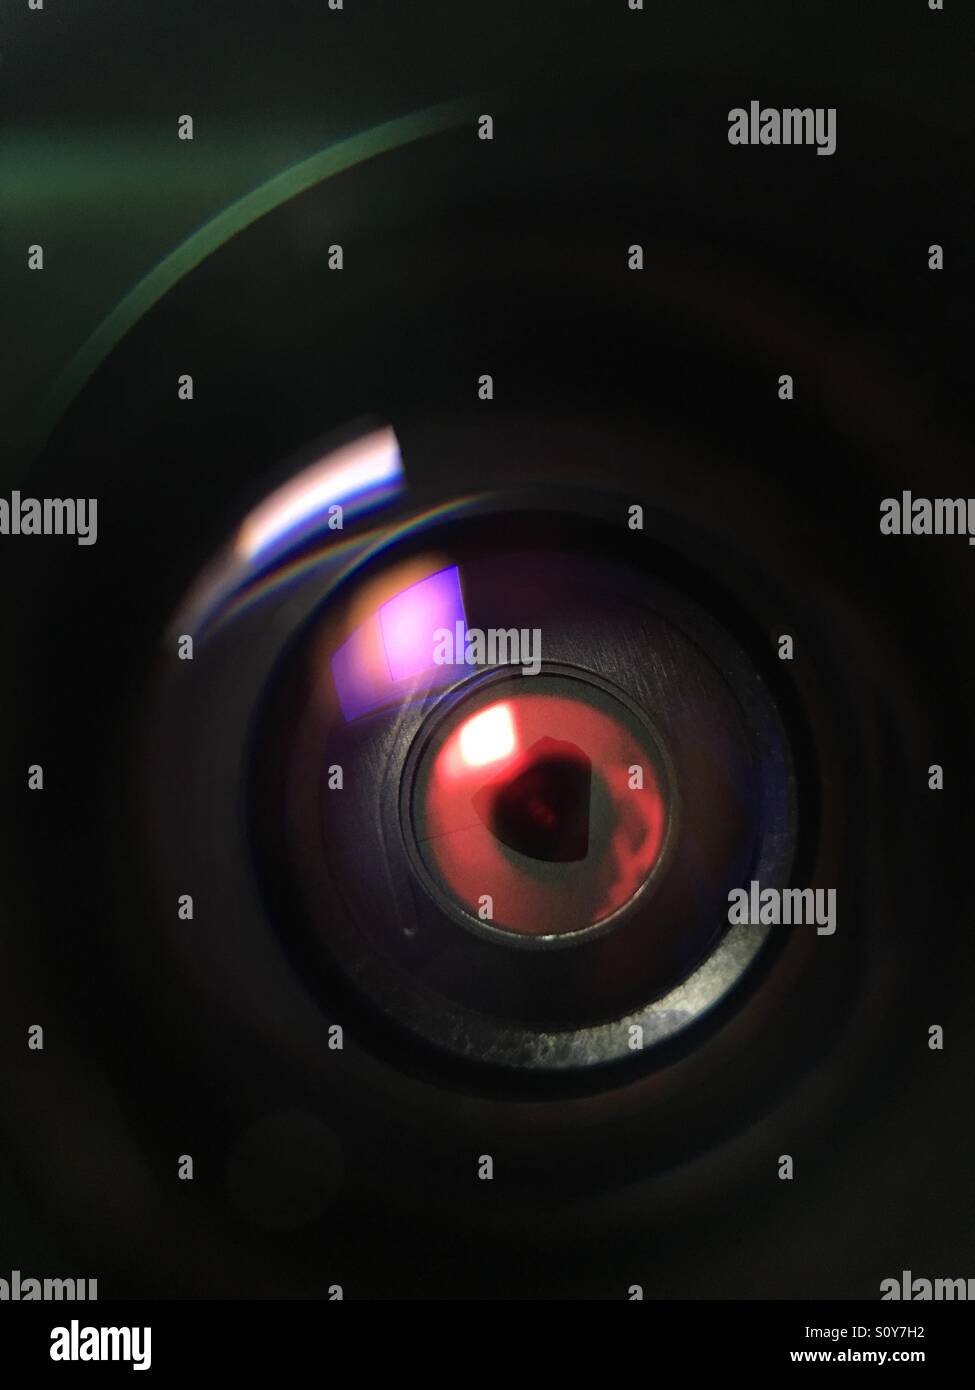 'My big brother' HD security camera, olloclip macro @ 21x magnification. Stock Photo